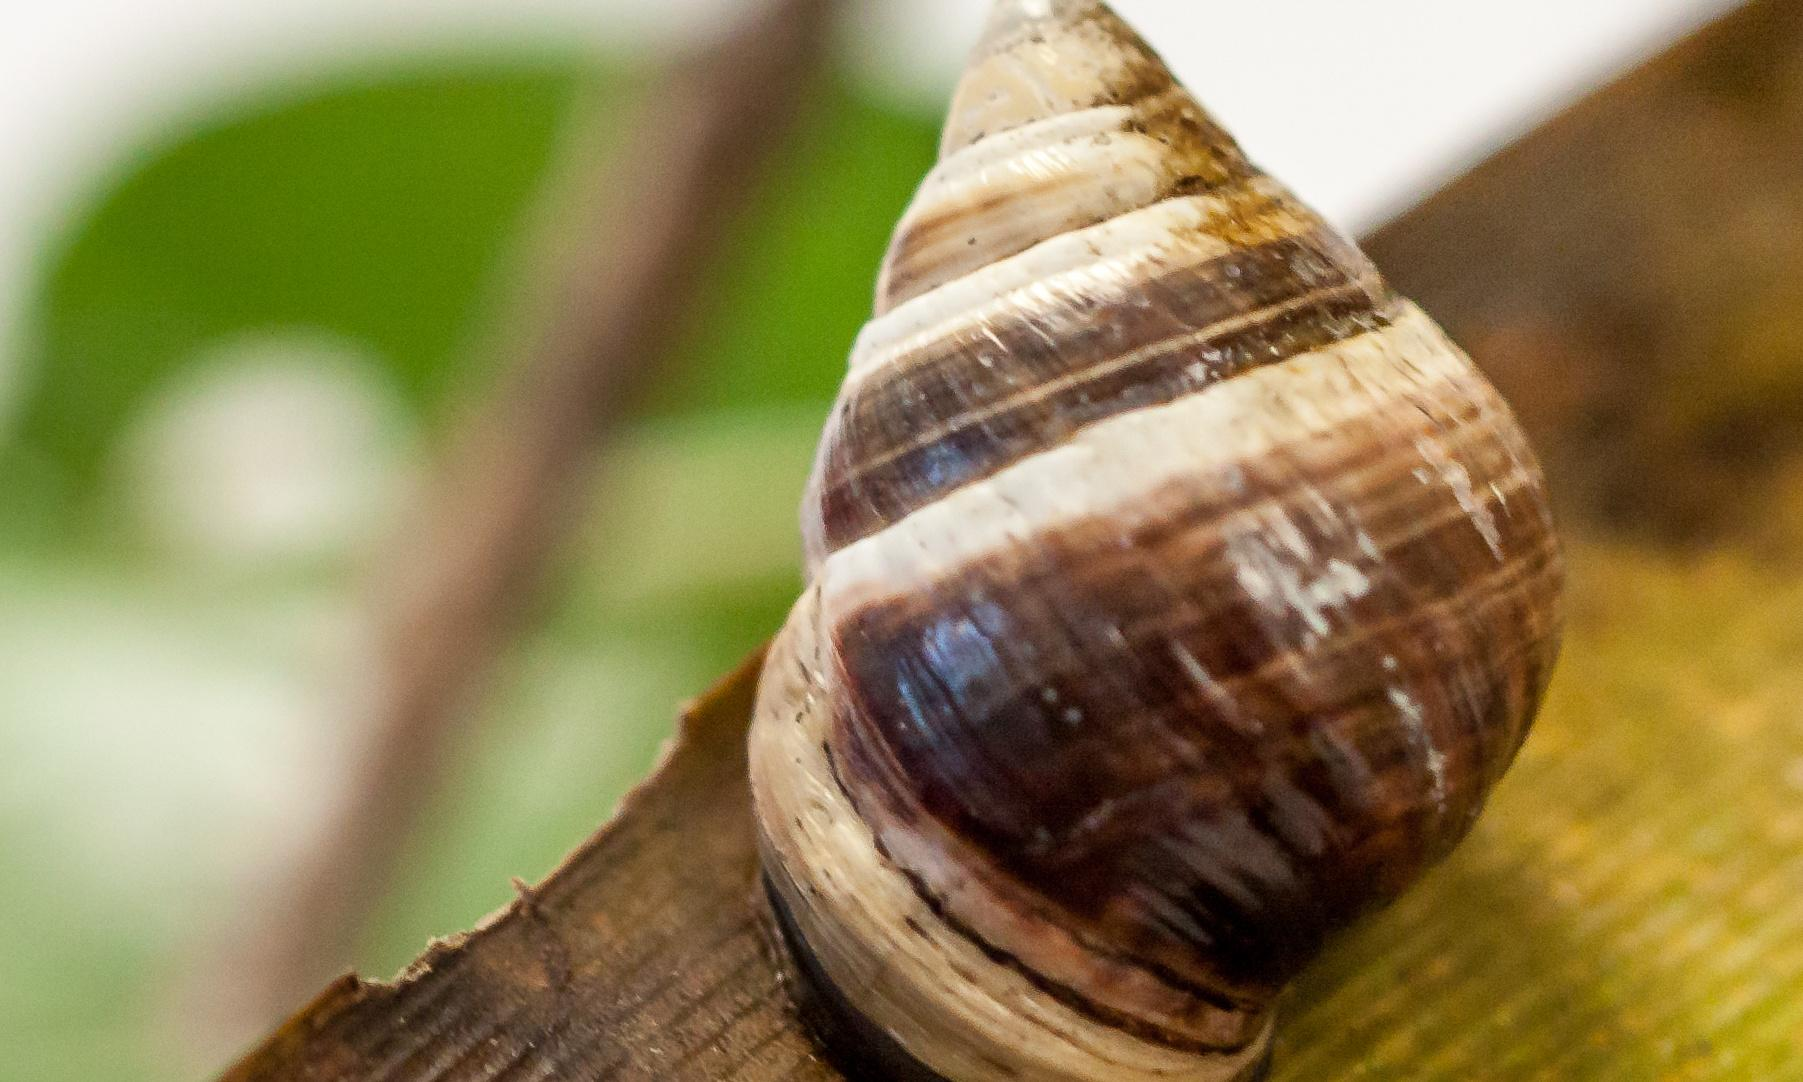 'Voice of the forest': George the snail, last of his kind, dies at age 14